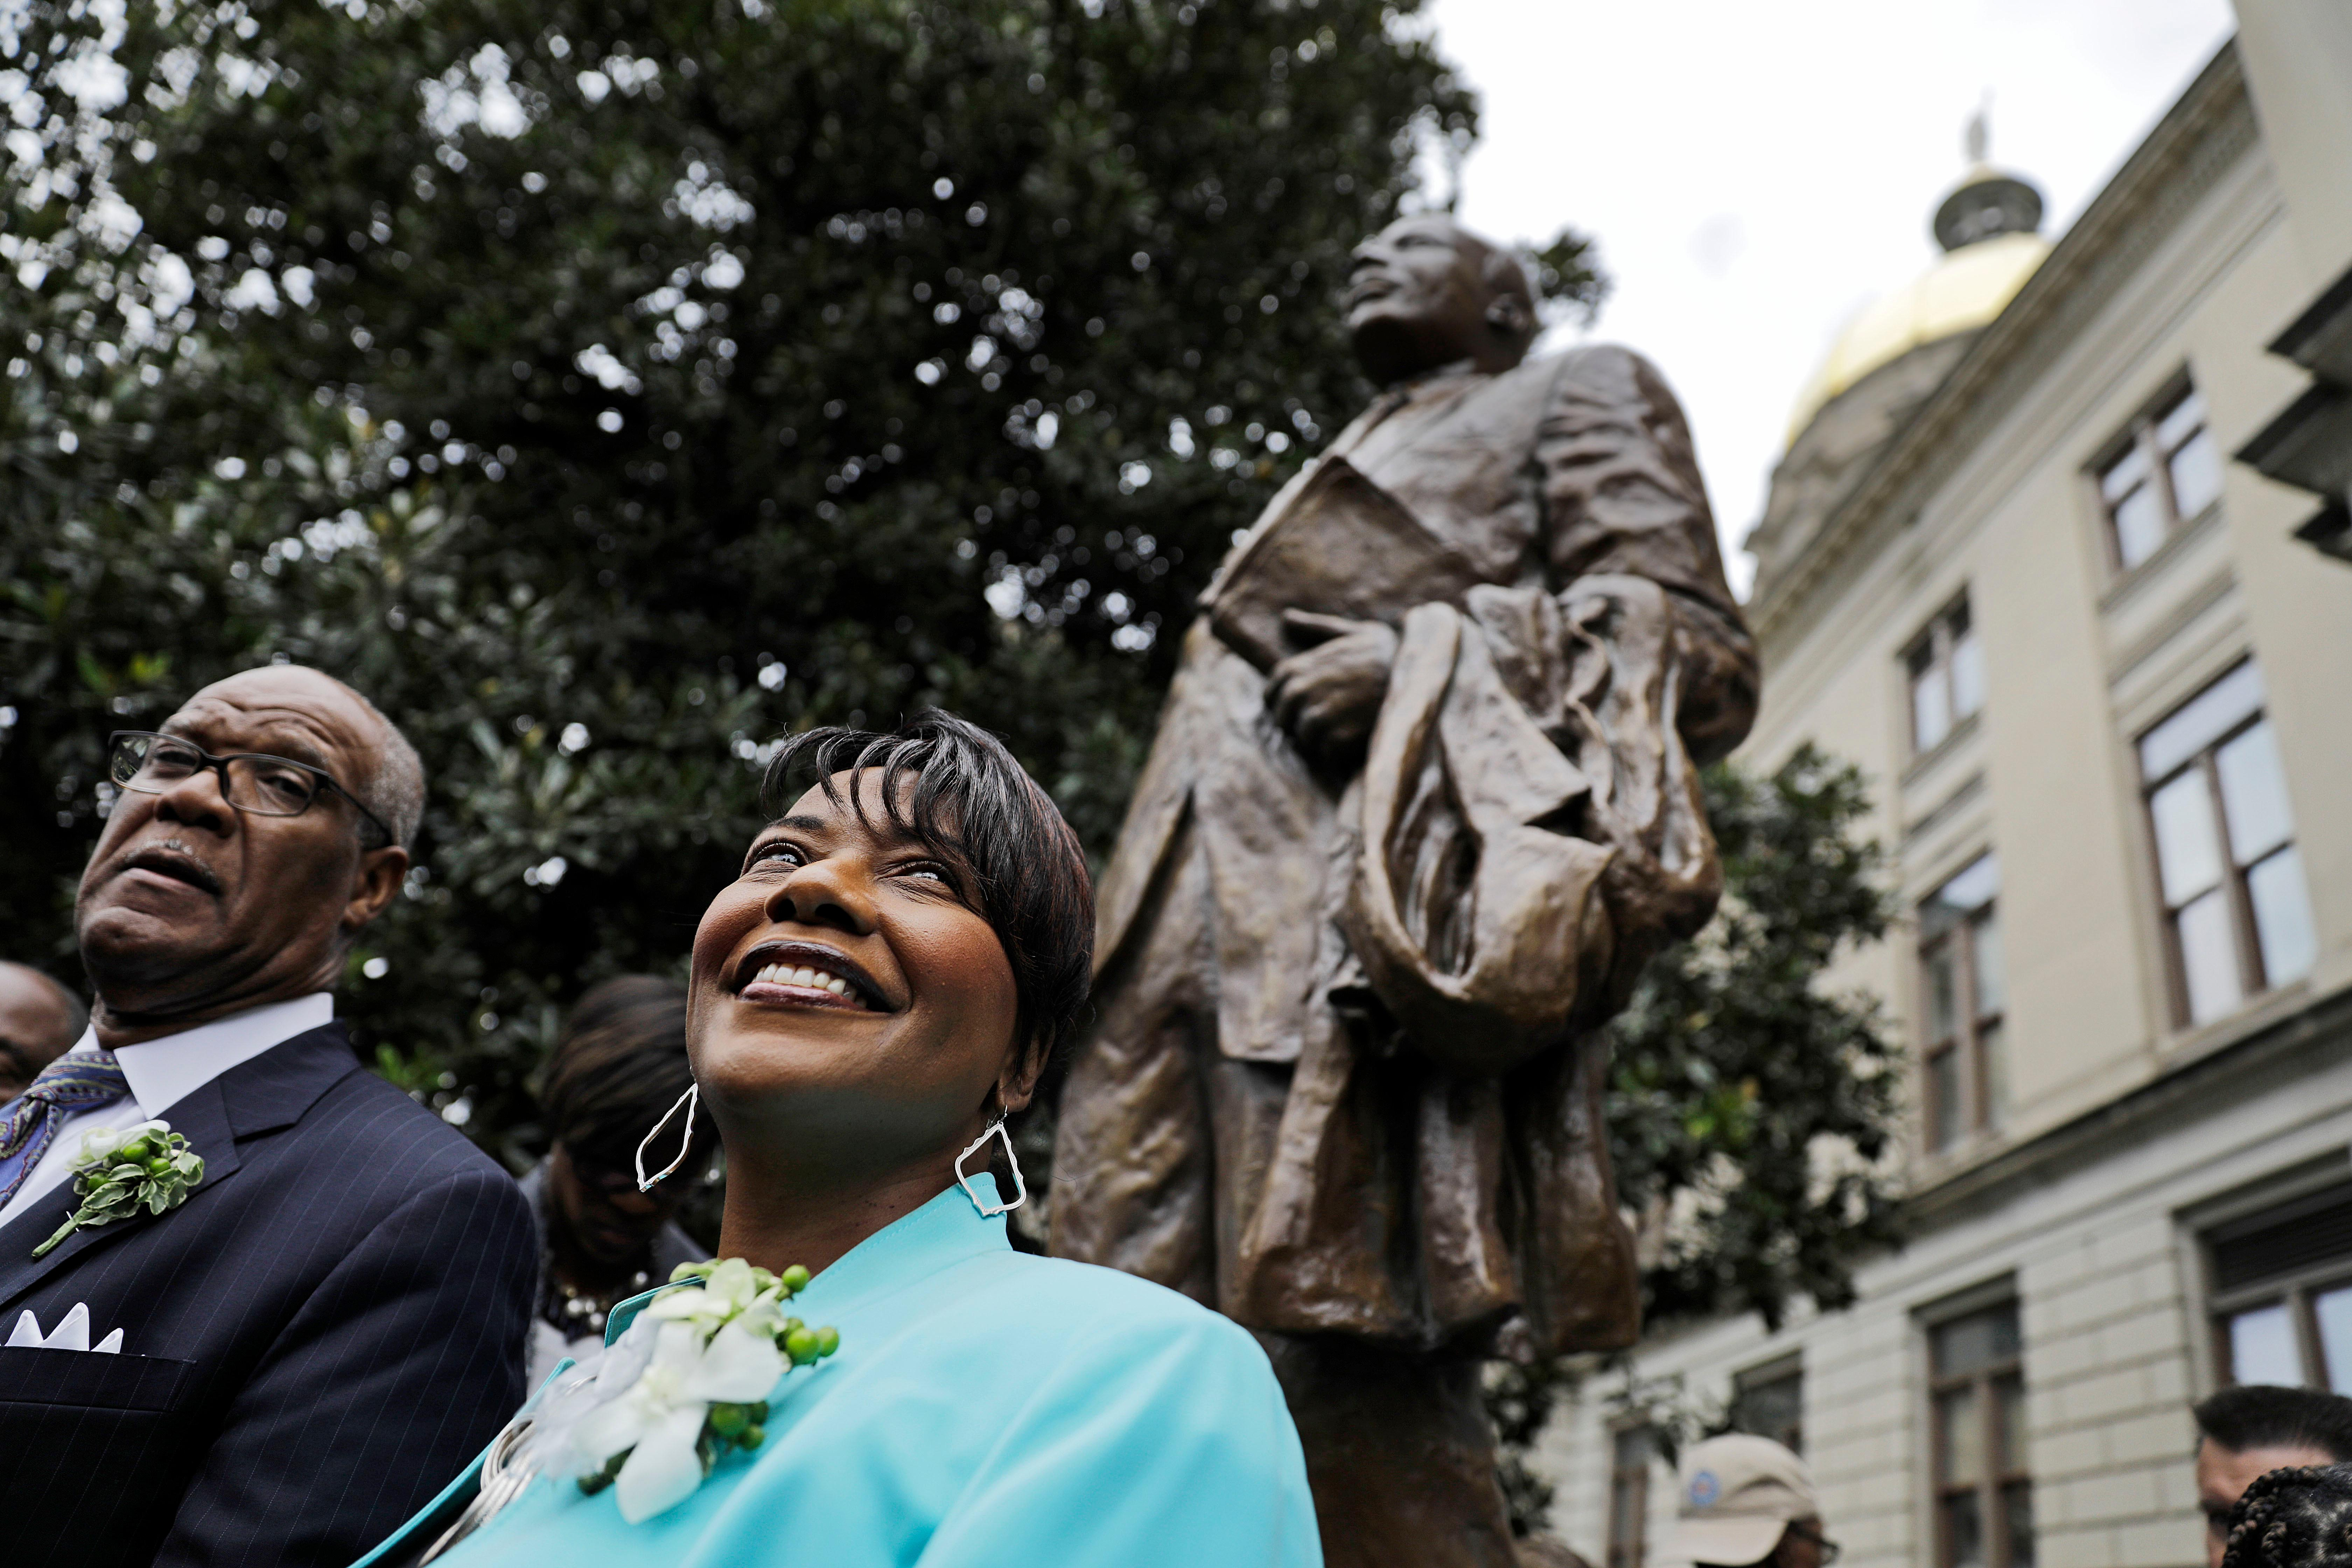 "The Rev. Bernice King, right, daughter of the Rev. Martin Luther King Jr., stands under a statue paying tribute to her father, after it's unveiled on the state Capitol grounds in Atlanta, Monday, Aug. 28, 2017. The statue's unveiling Monday came more than three years after Georgia lawmakers endorsed the project. A replica of the nation's Liberty Bell tolled three times before the 8-foot (2.44-meter) bronze statue was unveiled on the 54th anniversary of King's ""I have a dream"" speech at the march on Washington. (AP Photo/David Goldman)"